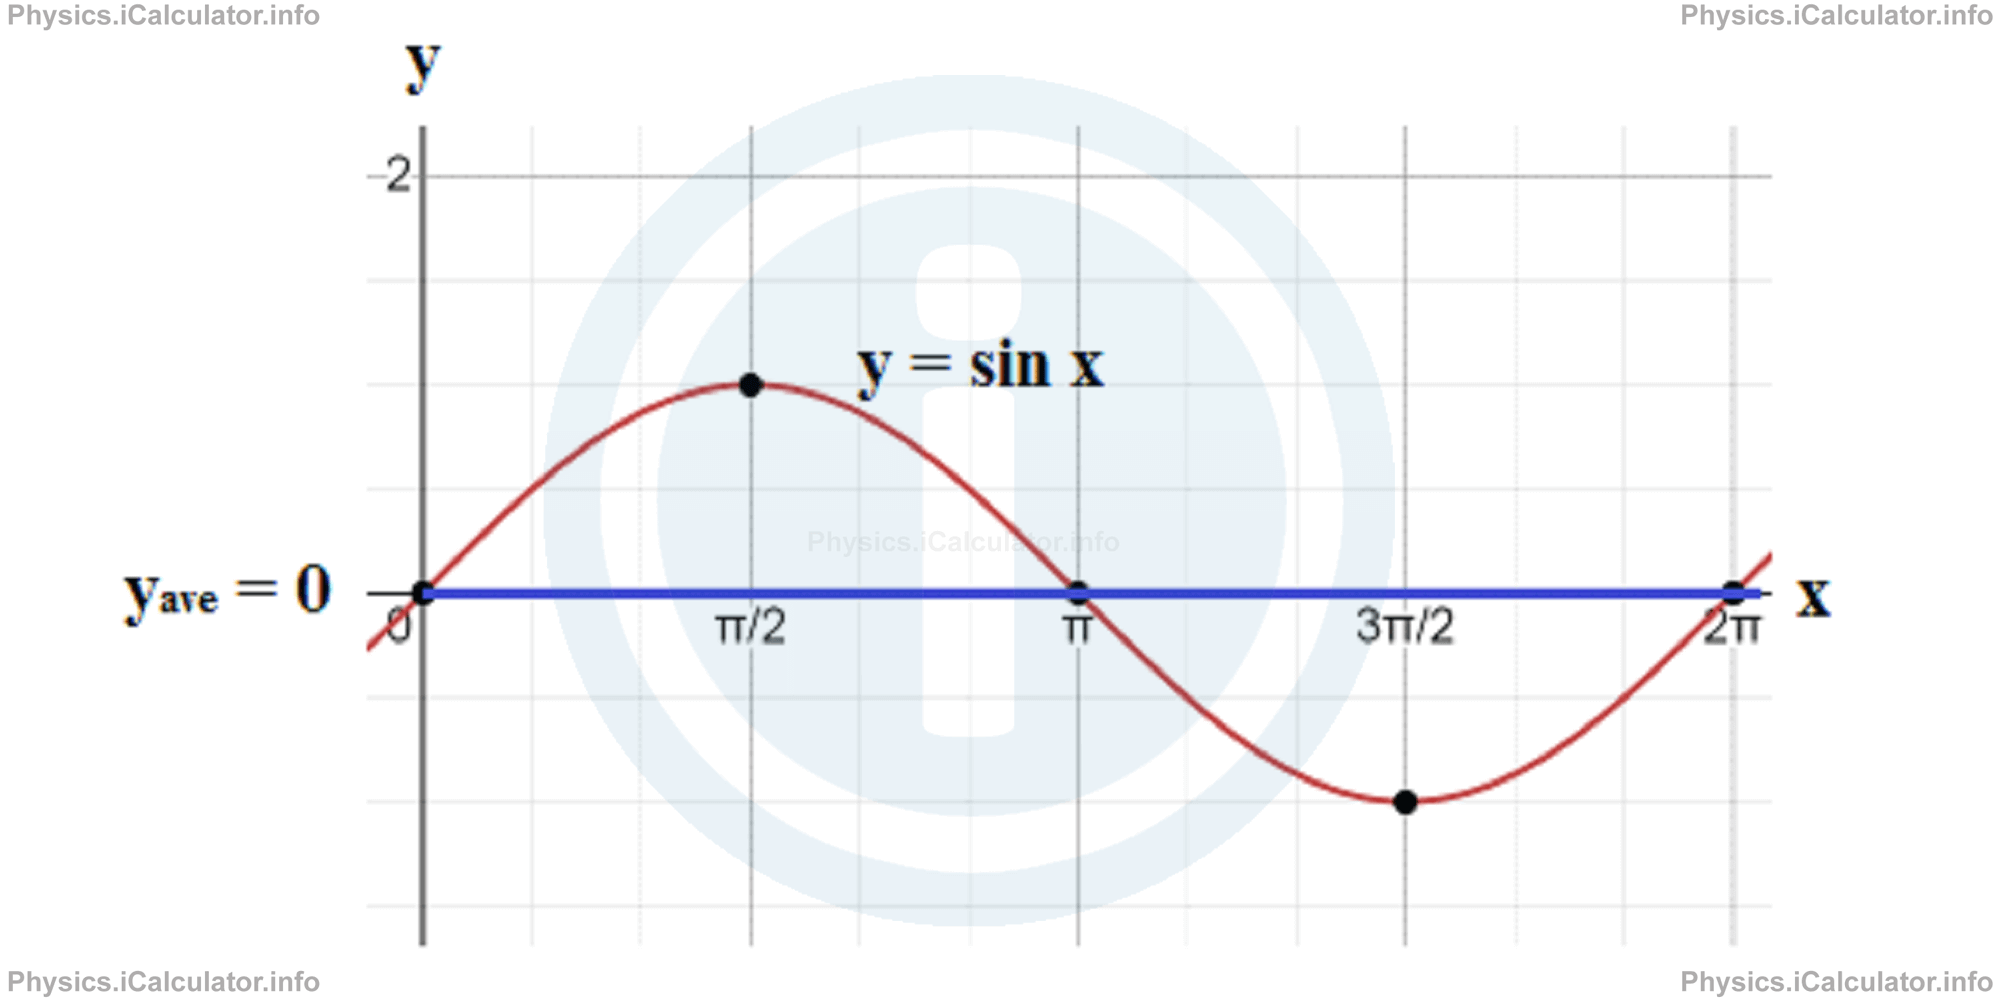 Physics Tutorials: This image provides visual information for the physics tutorial Power in an Alternating Circuit. Transformers